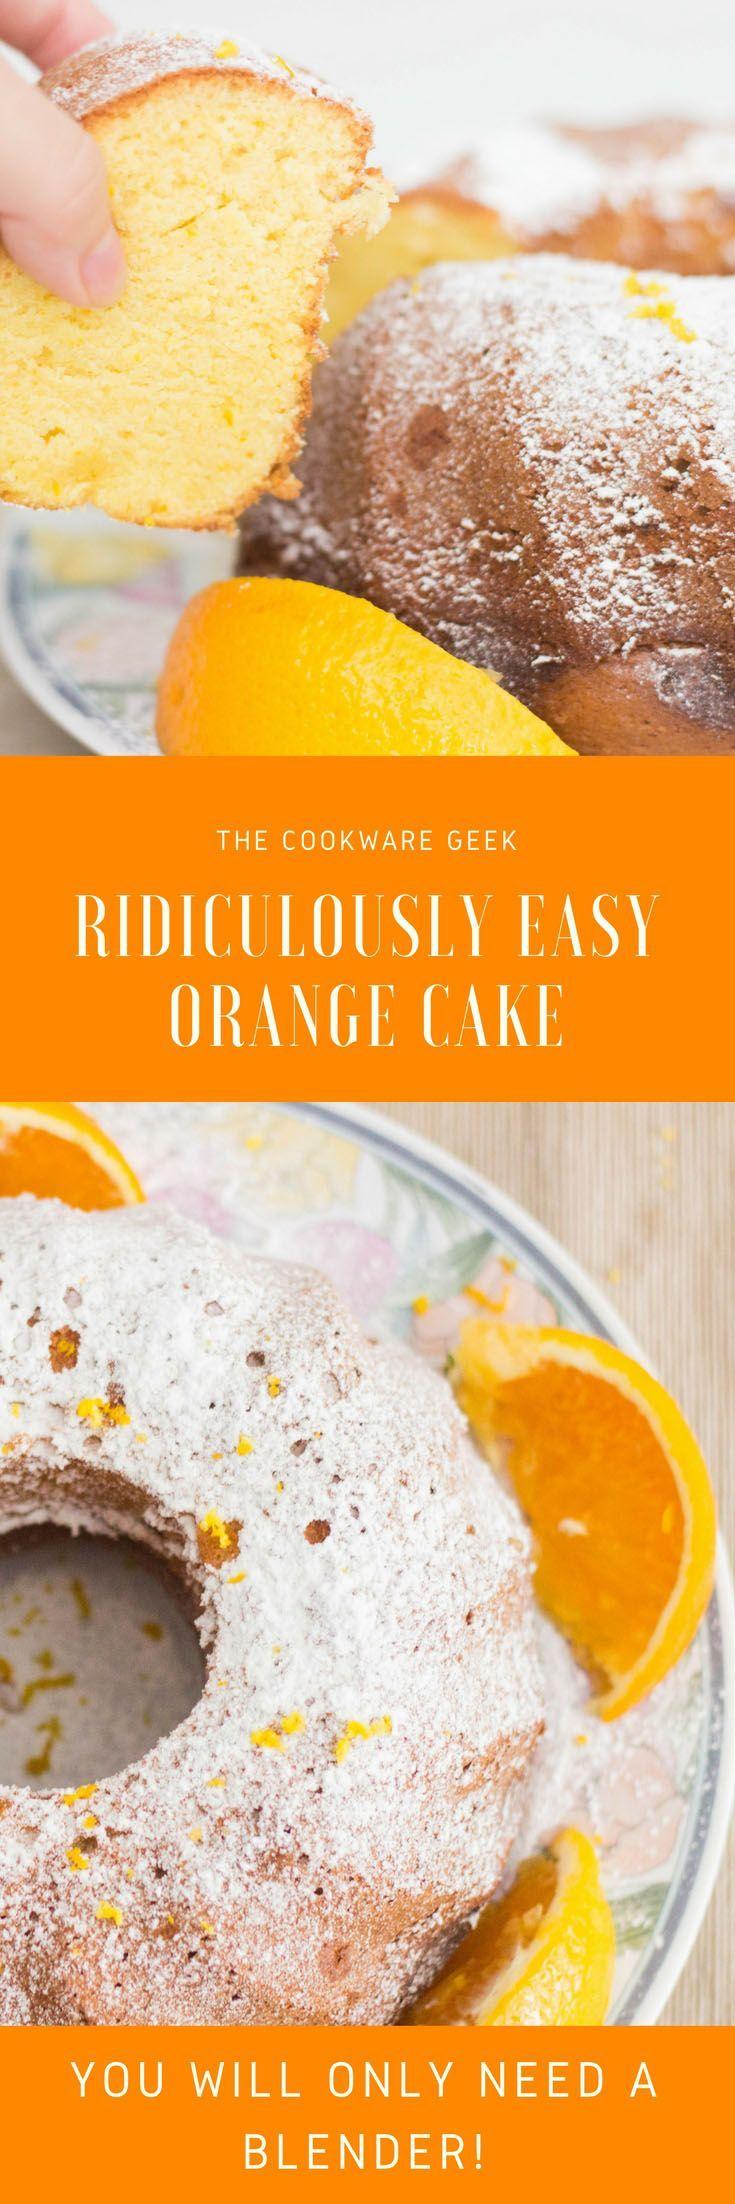 Ridiculously Easy Orange Cake | The Cookware Geek